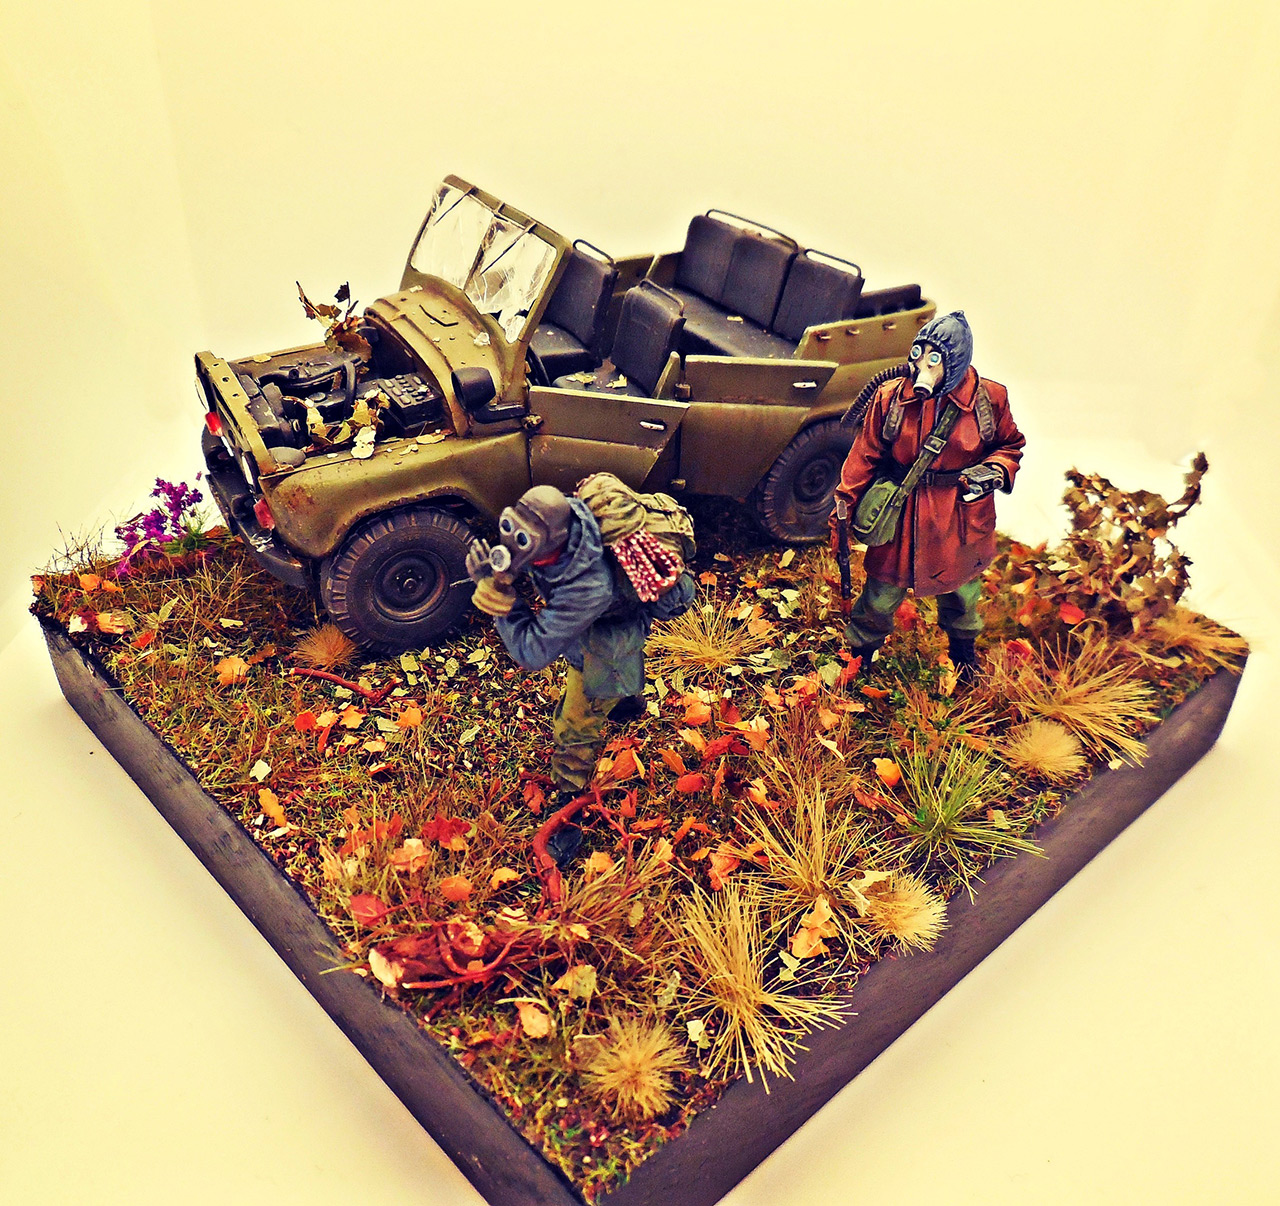 Dioramas and Vignettes: Postapocalypse, photo #2